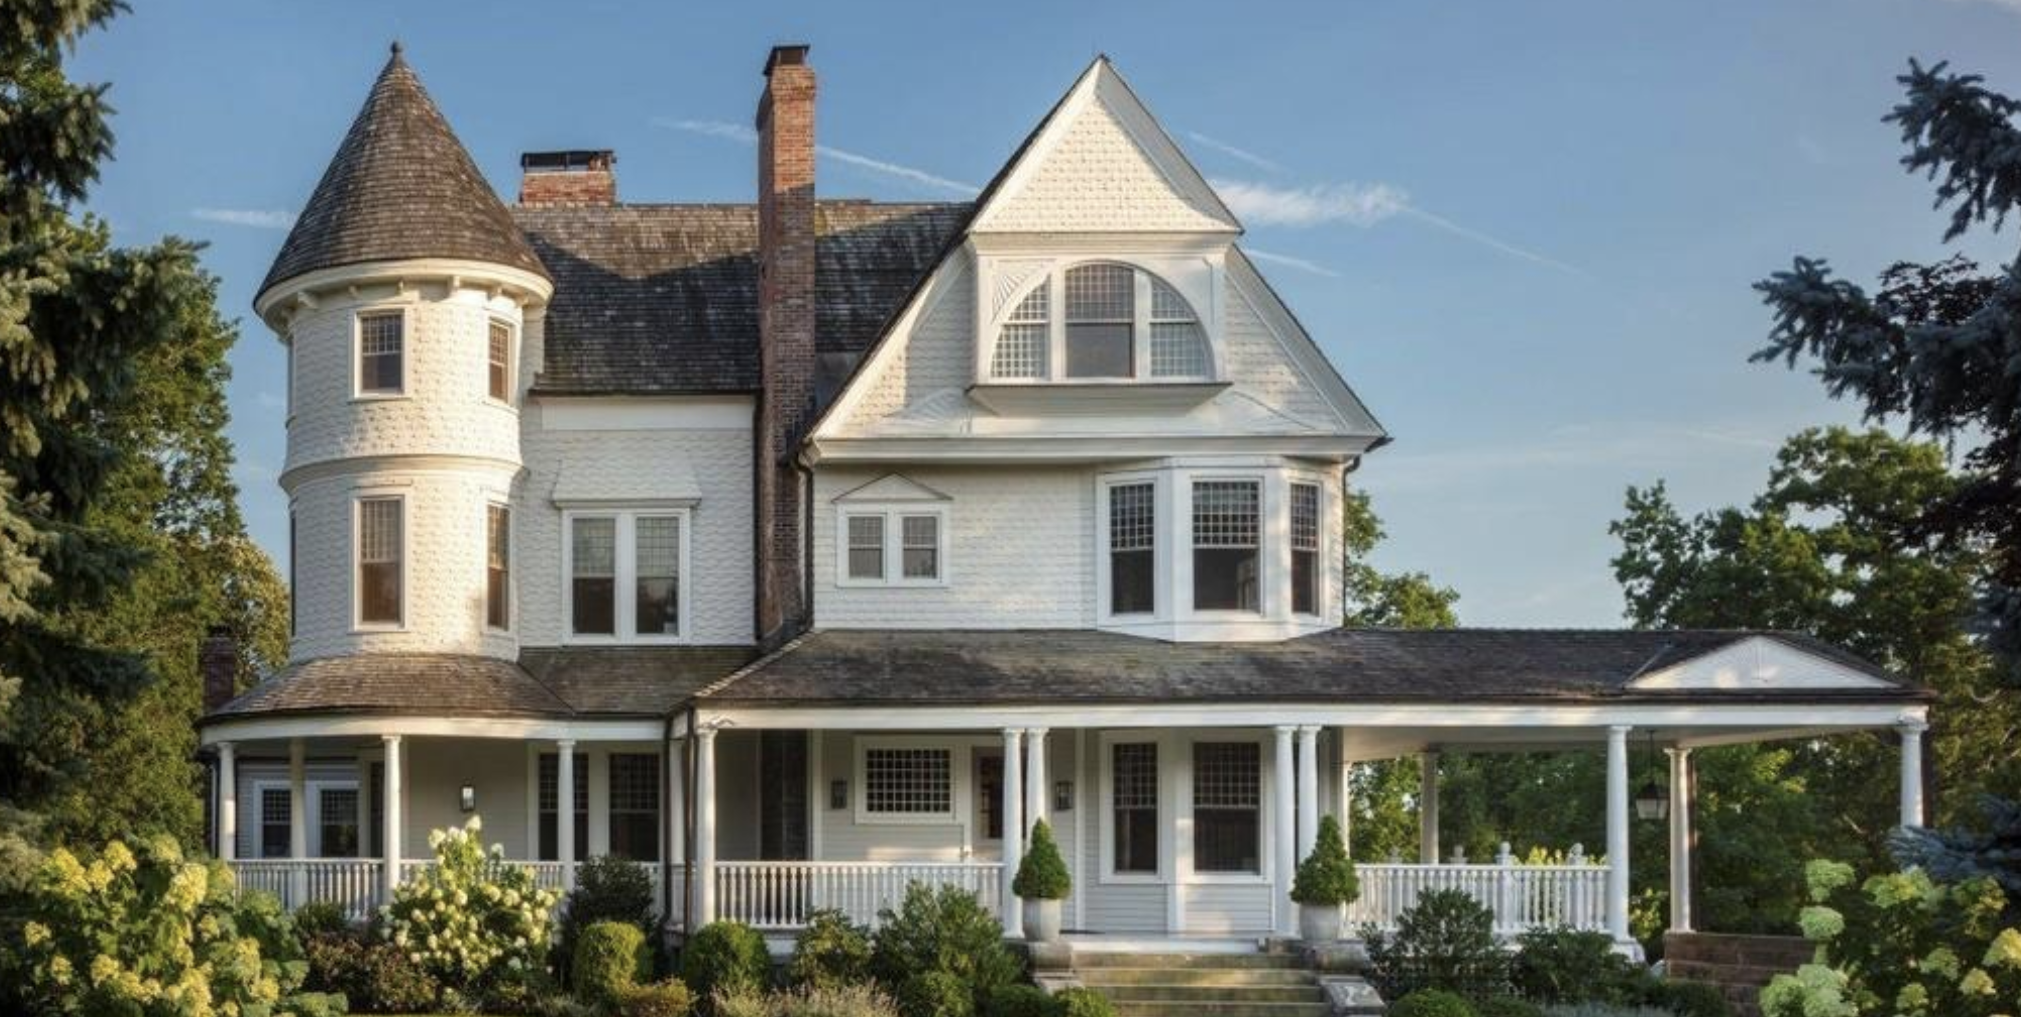 This Home for Sale Might Be the Birthplace of the Oreo Cookie